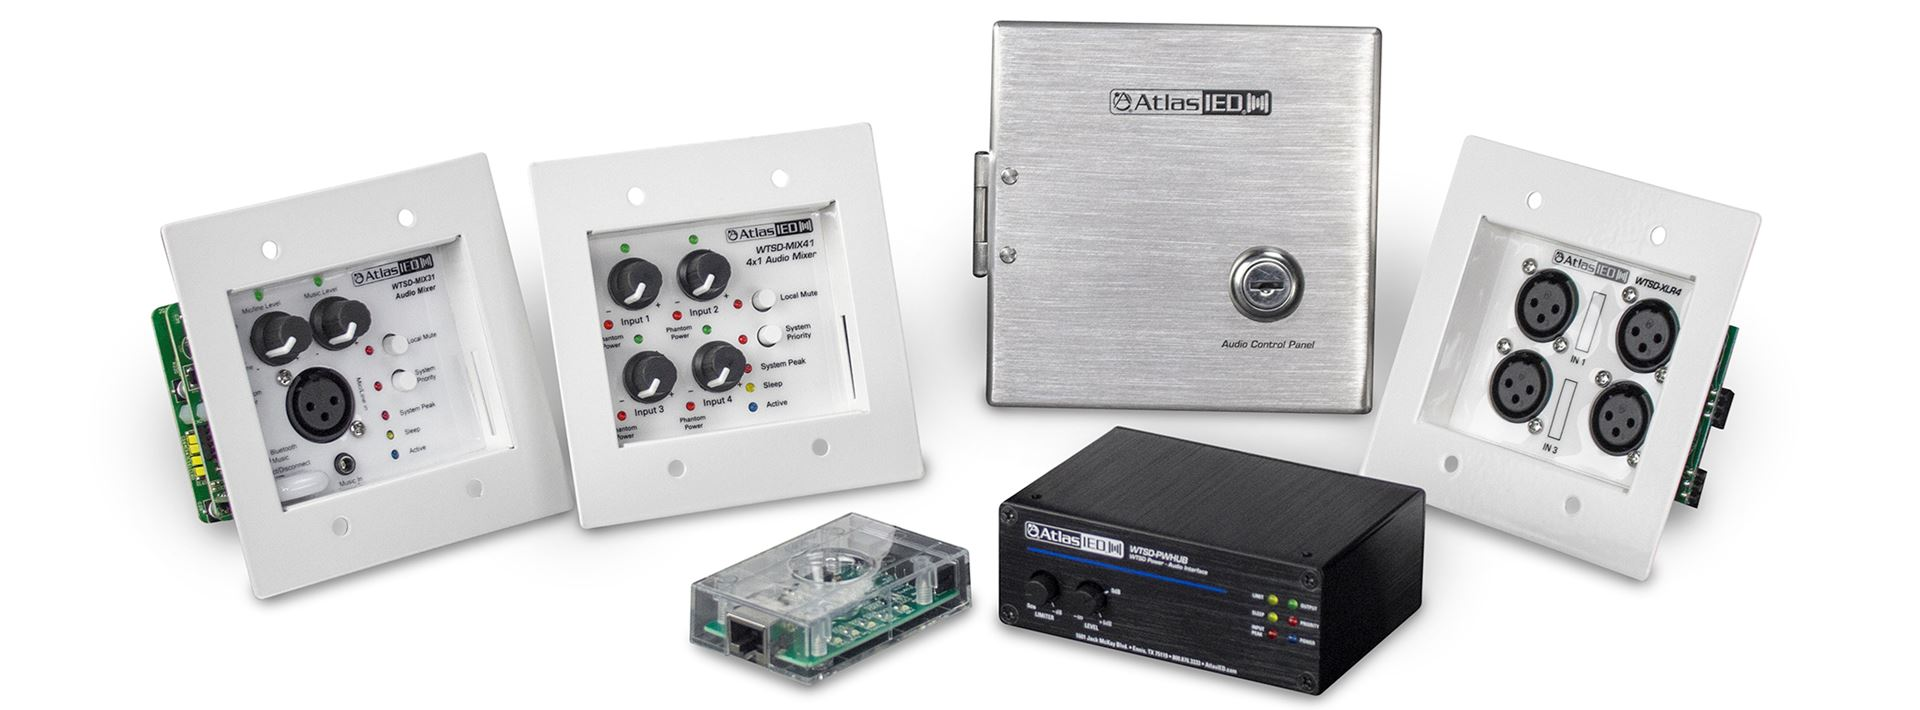 Several New Commercial Audio Processing Products Added to TSD Lineup